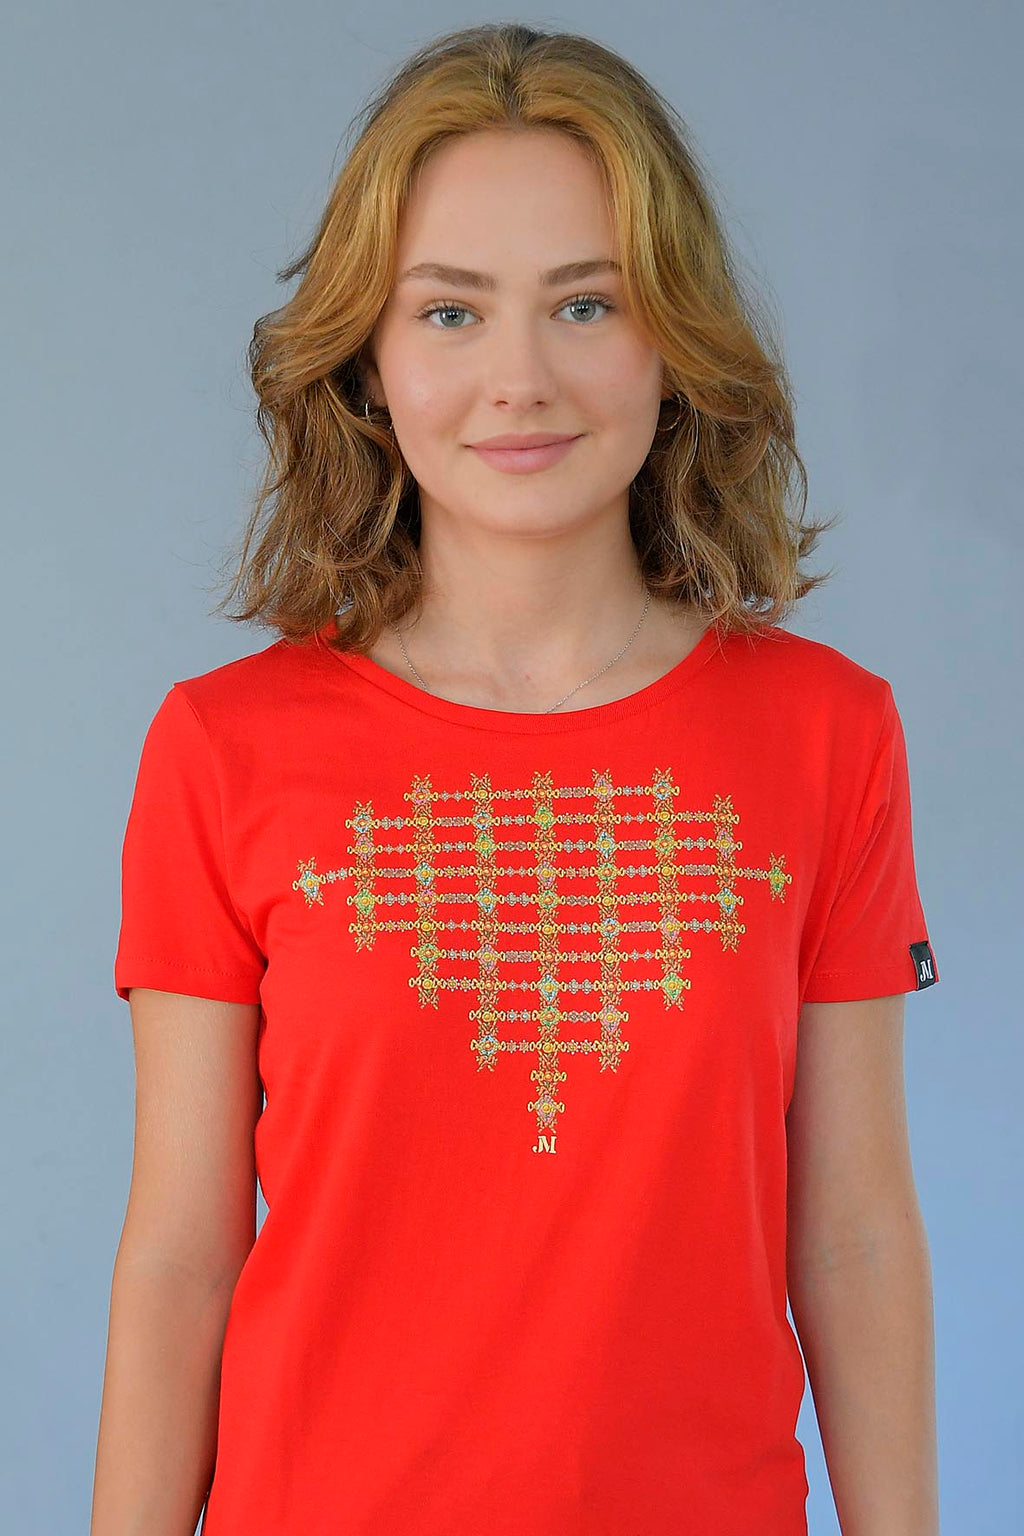 T-SHIRT JEWERLY RIBBONS JM